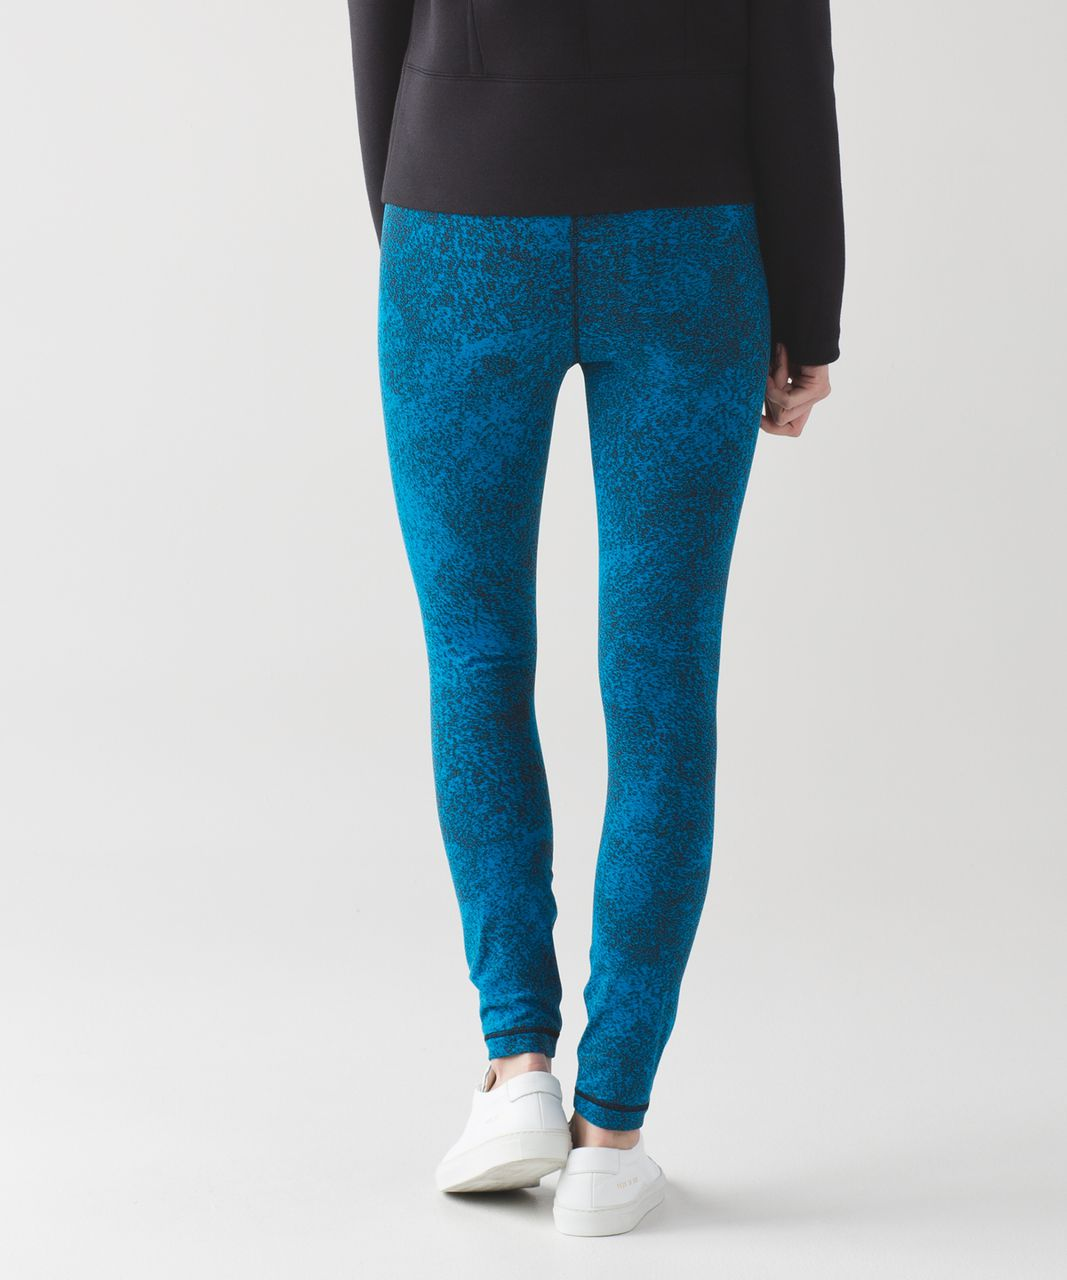 Lululemon High Times Pant - Luon Spray Jacquard Shocking Blue Black